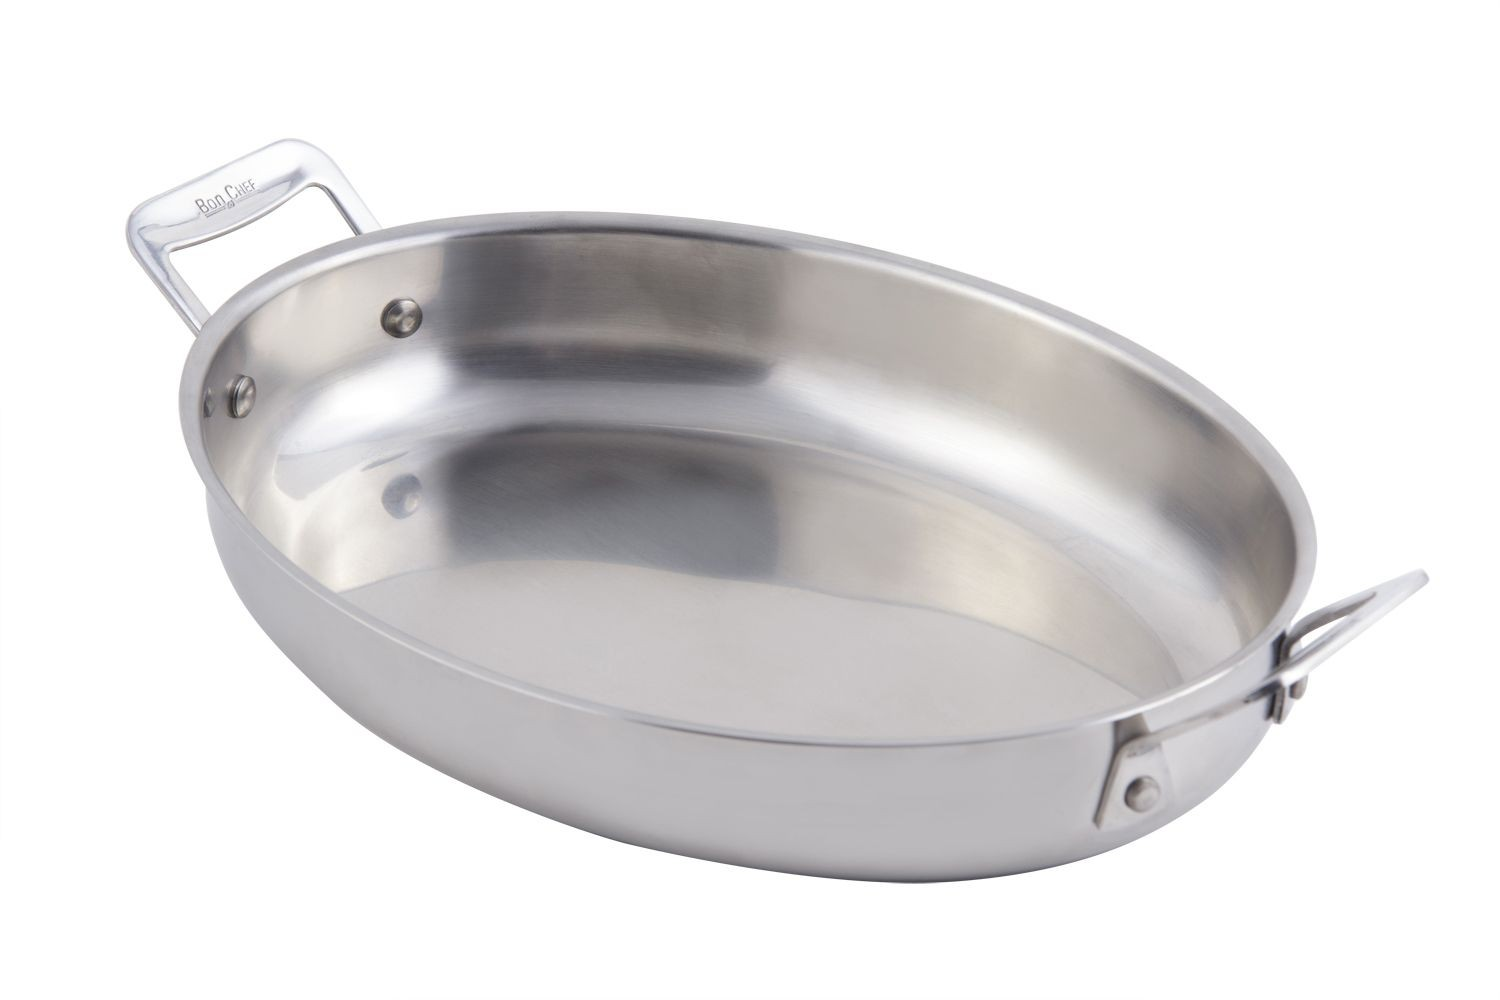 Bon Chef 60002 Cucina Stainless Steel Oval Au Gratin, 2 1/2 Qt.